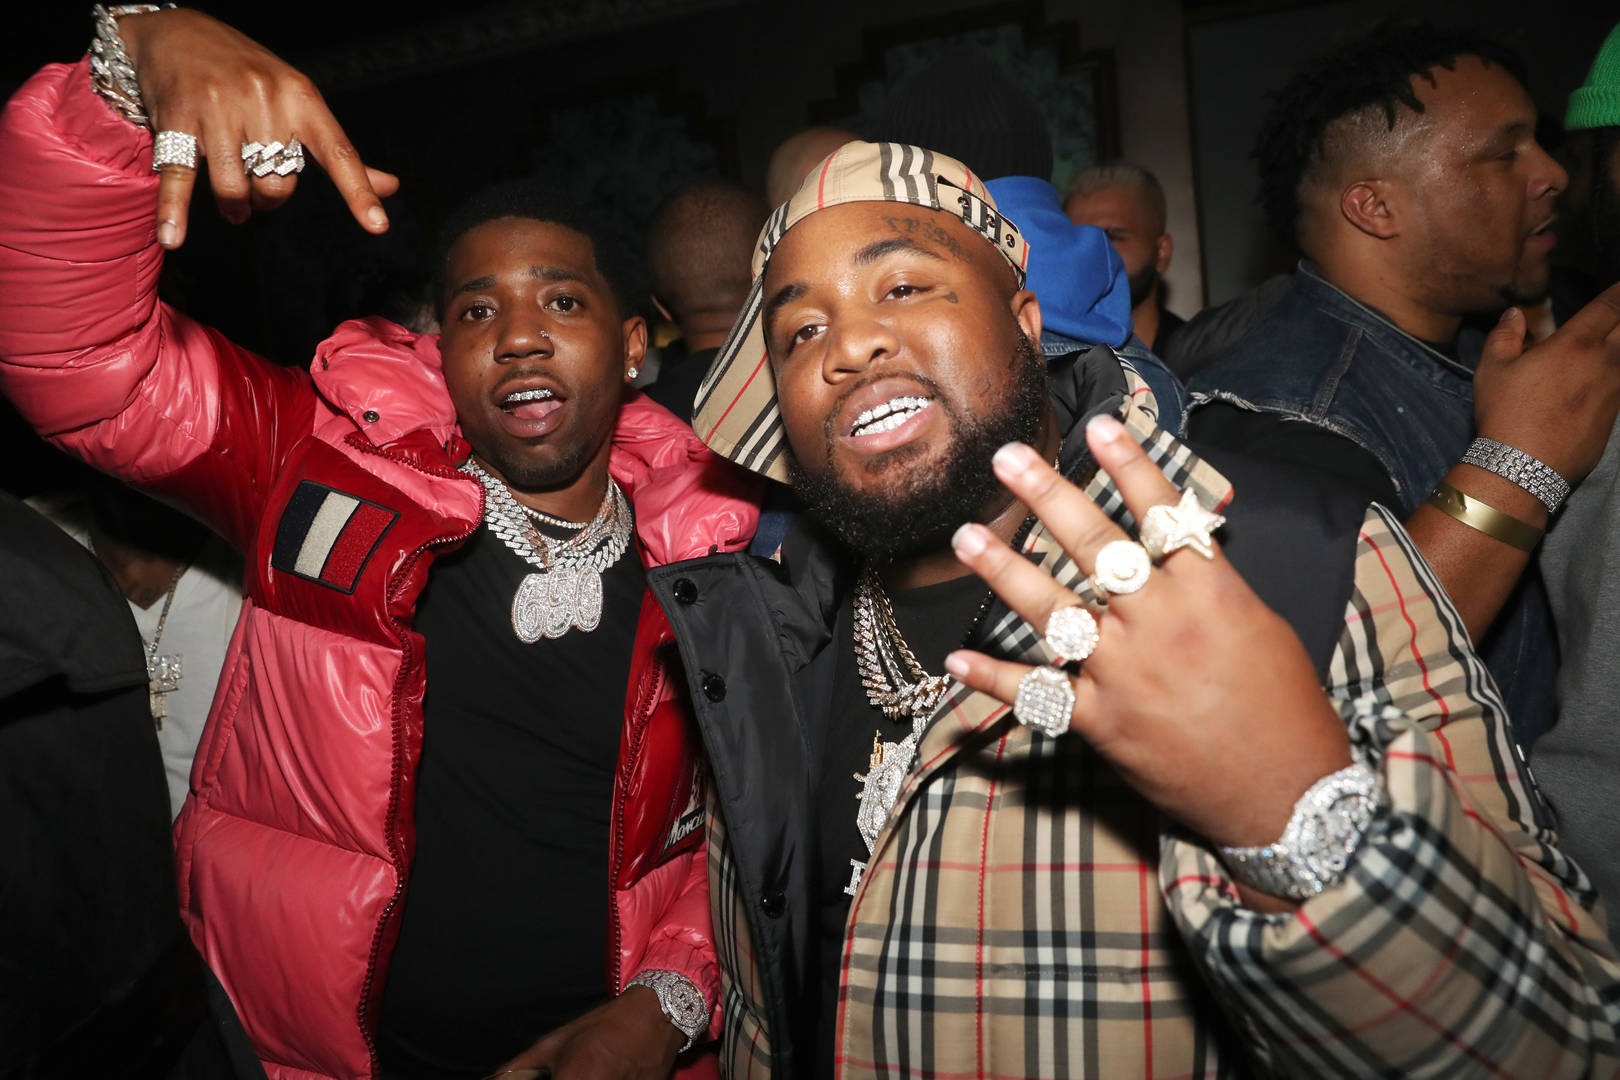 YFN Lucci and Mo3 attend EMPIRE Celebrates The Grammys at The Reserve on January 24, 2020 in Los Angeles, California.